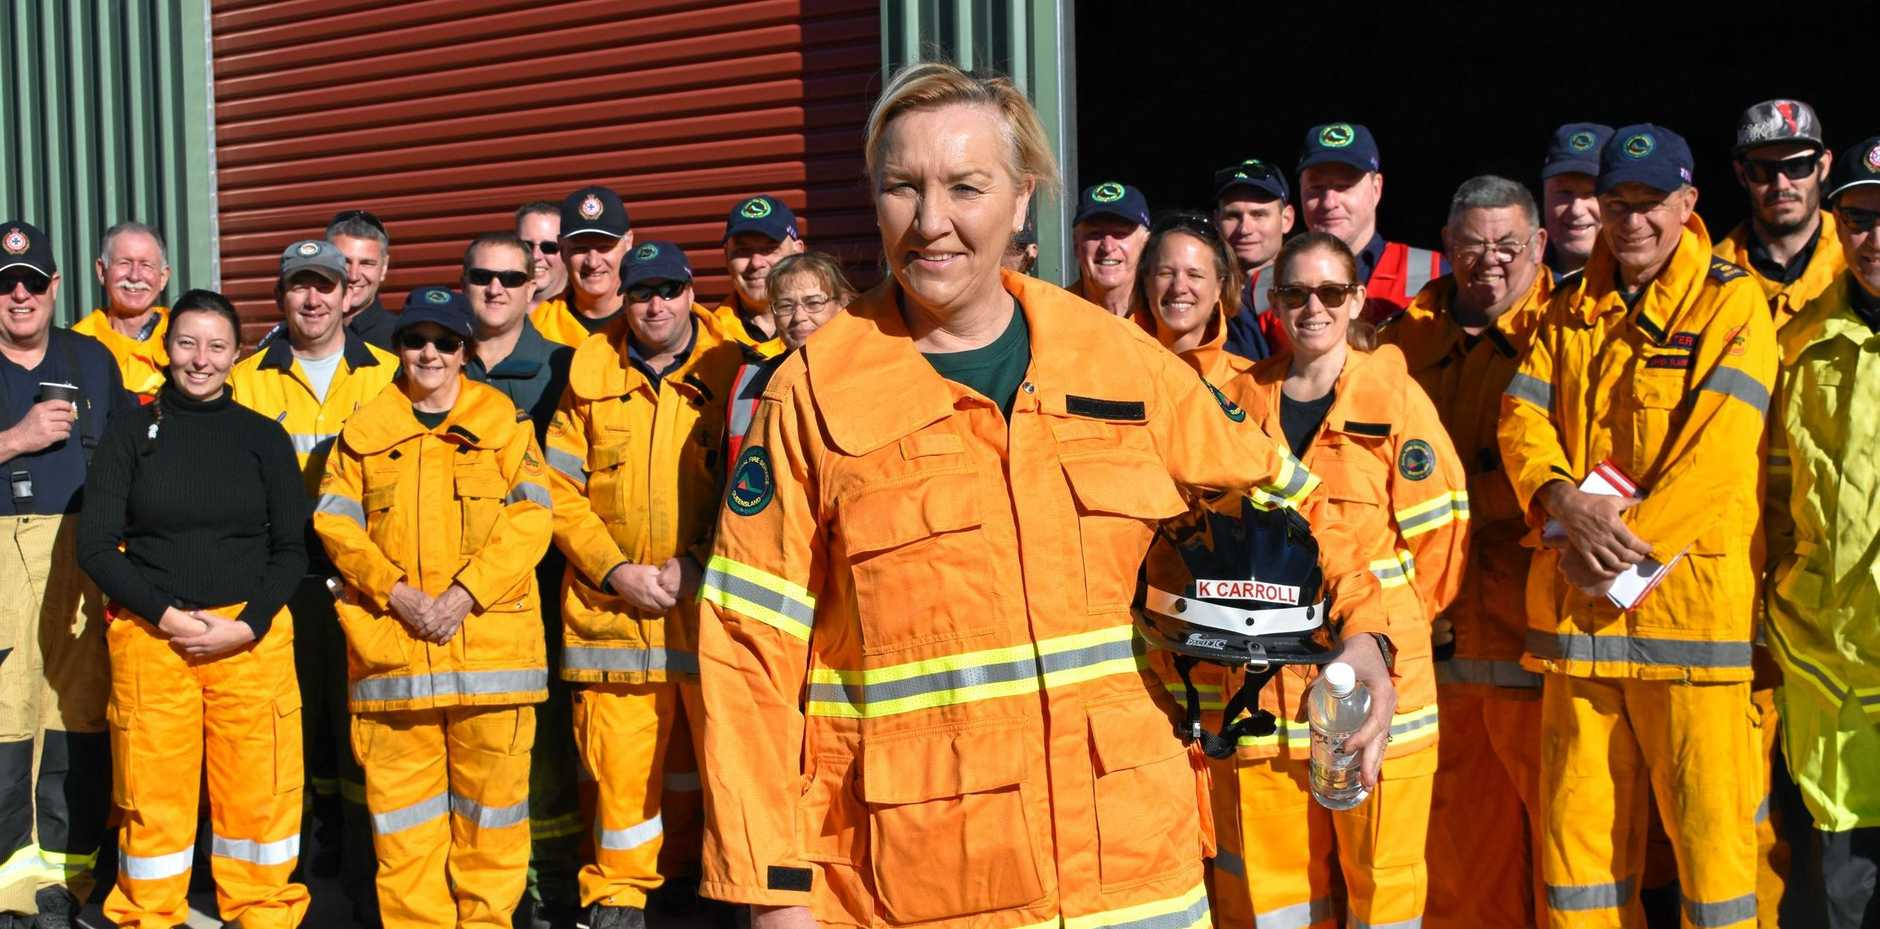 READY TO ROLL: Queensland Fire and Emergency Services Commissioner Katarina Carroll and members of the Rural Fire Service get ready for a training and testing exercise near Fordsdale on Saturday.